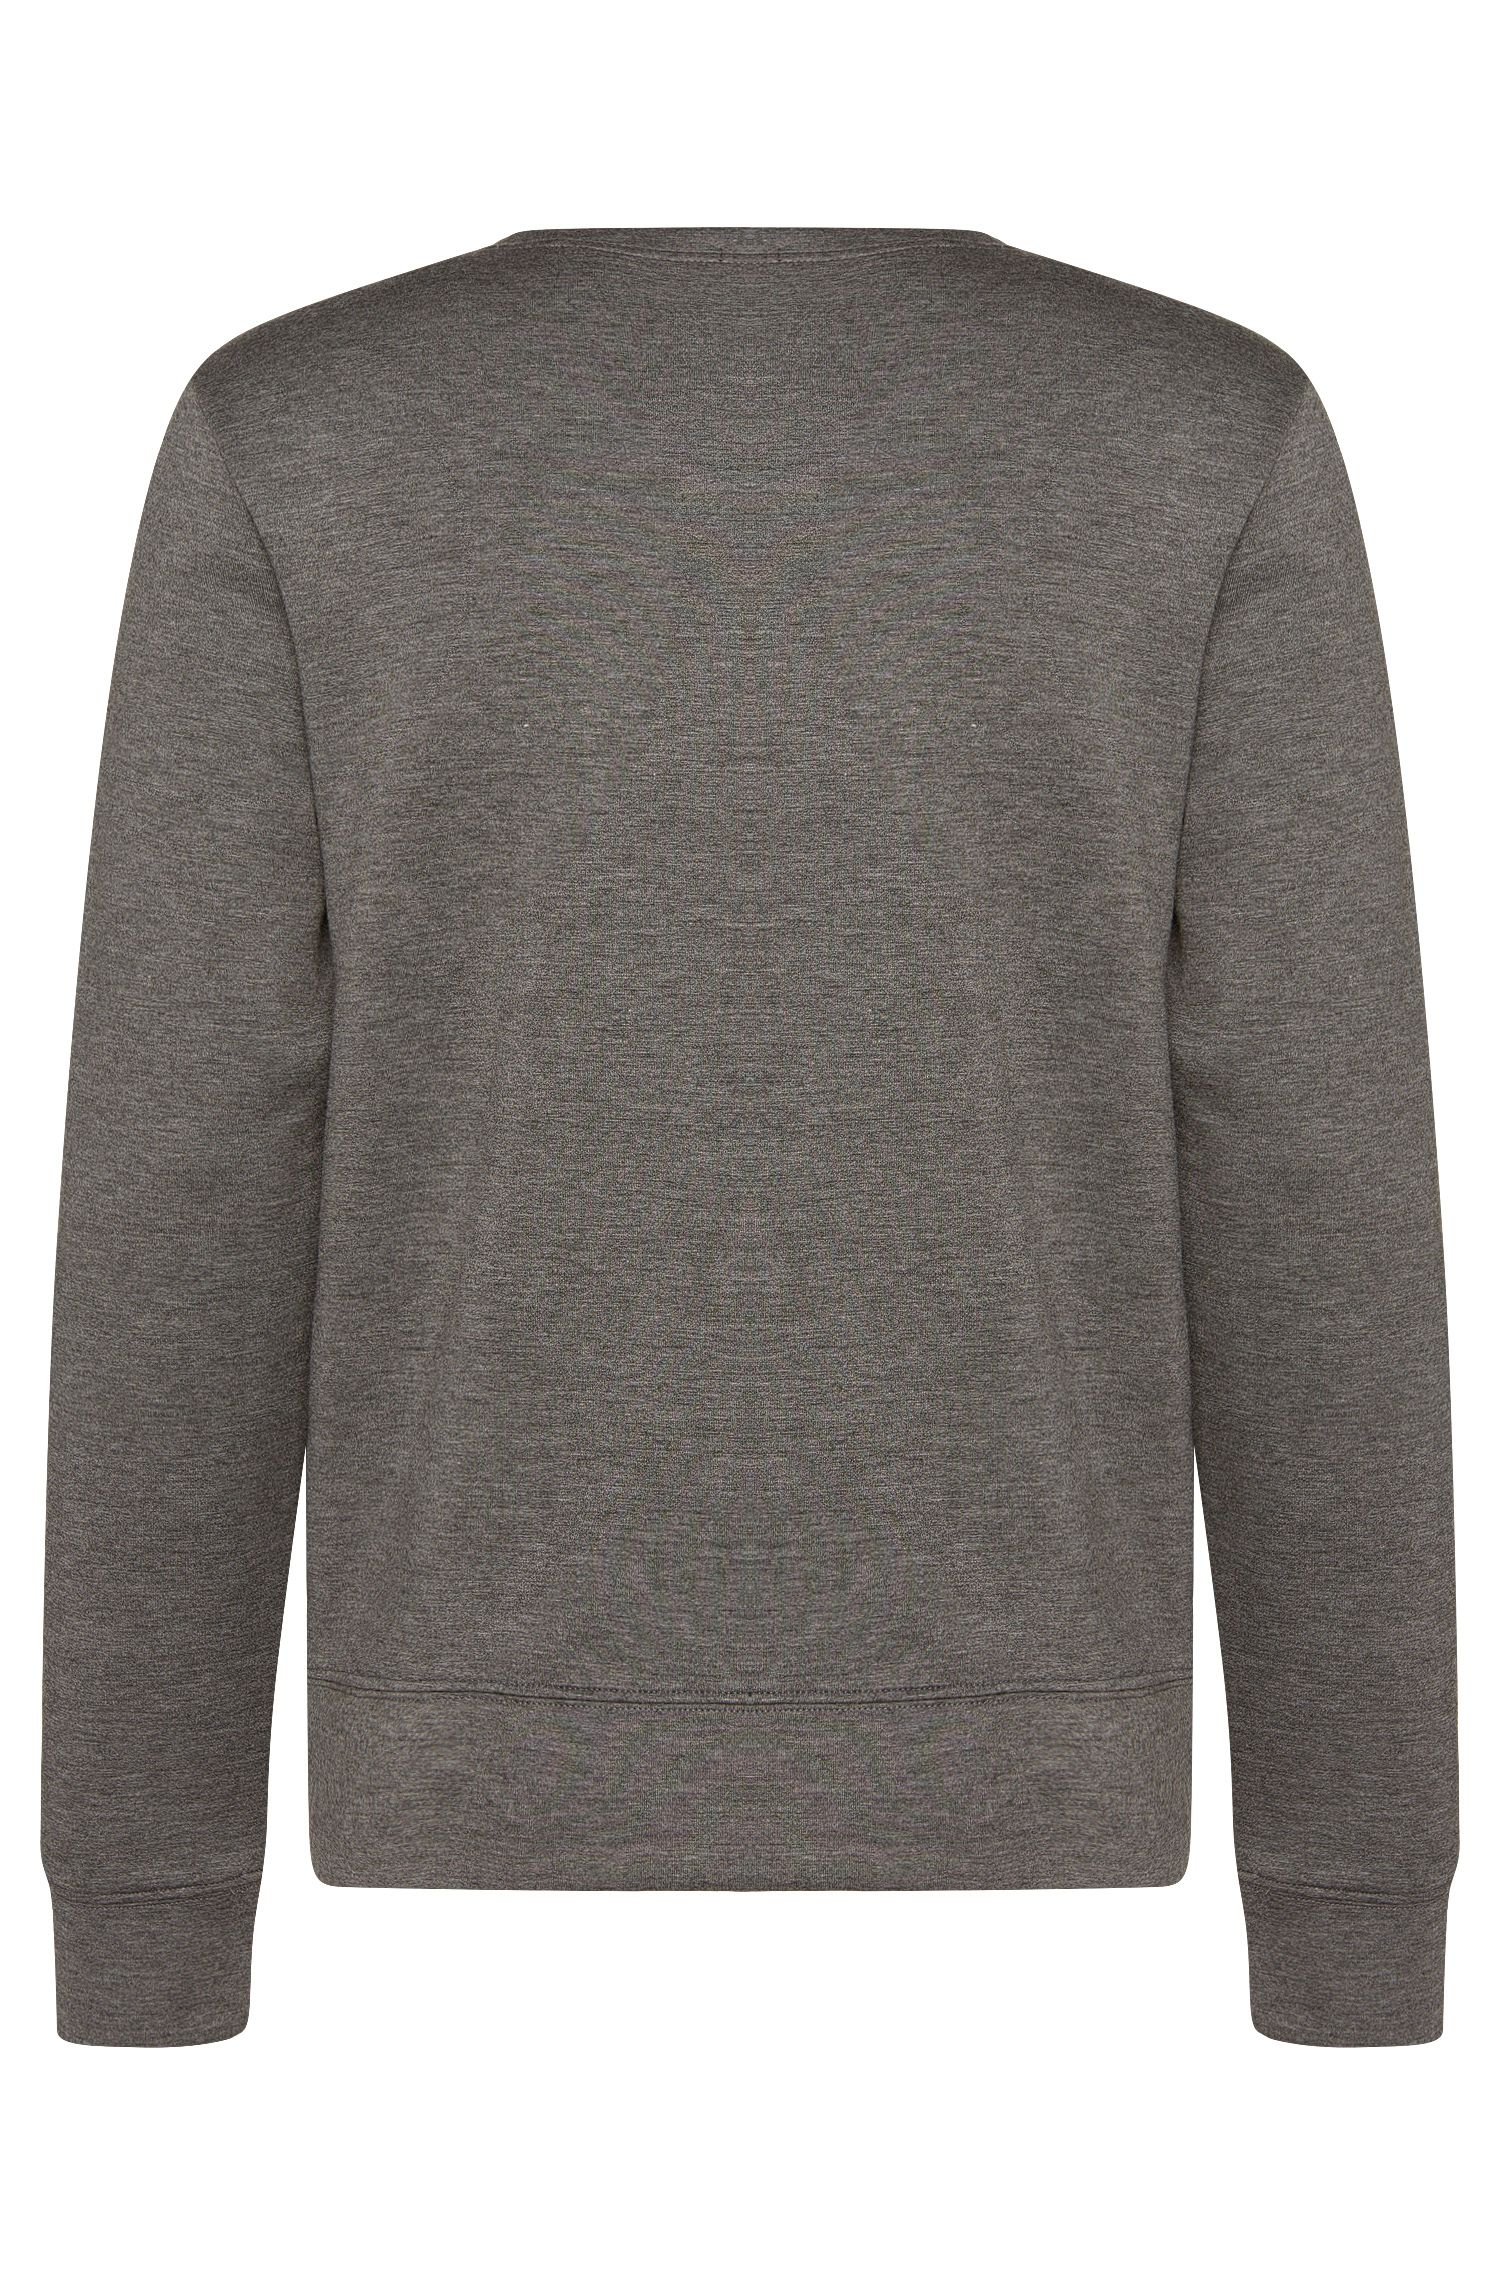 Gemêleerd slim-fit sweatshirt van viscose met stretch: 'Skubic 07'